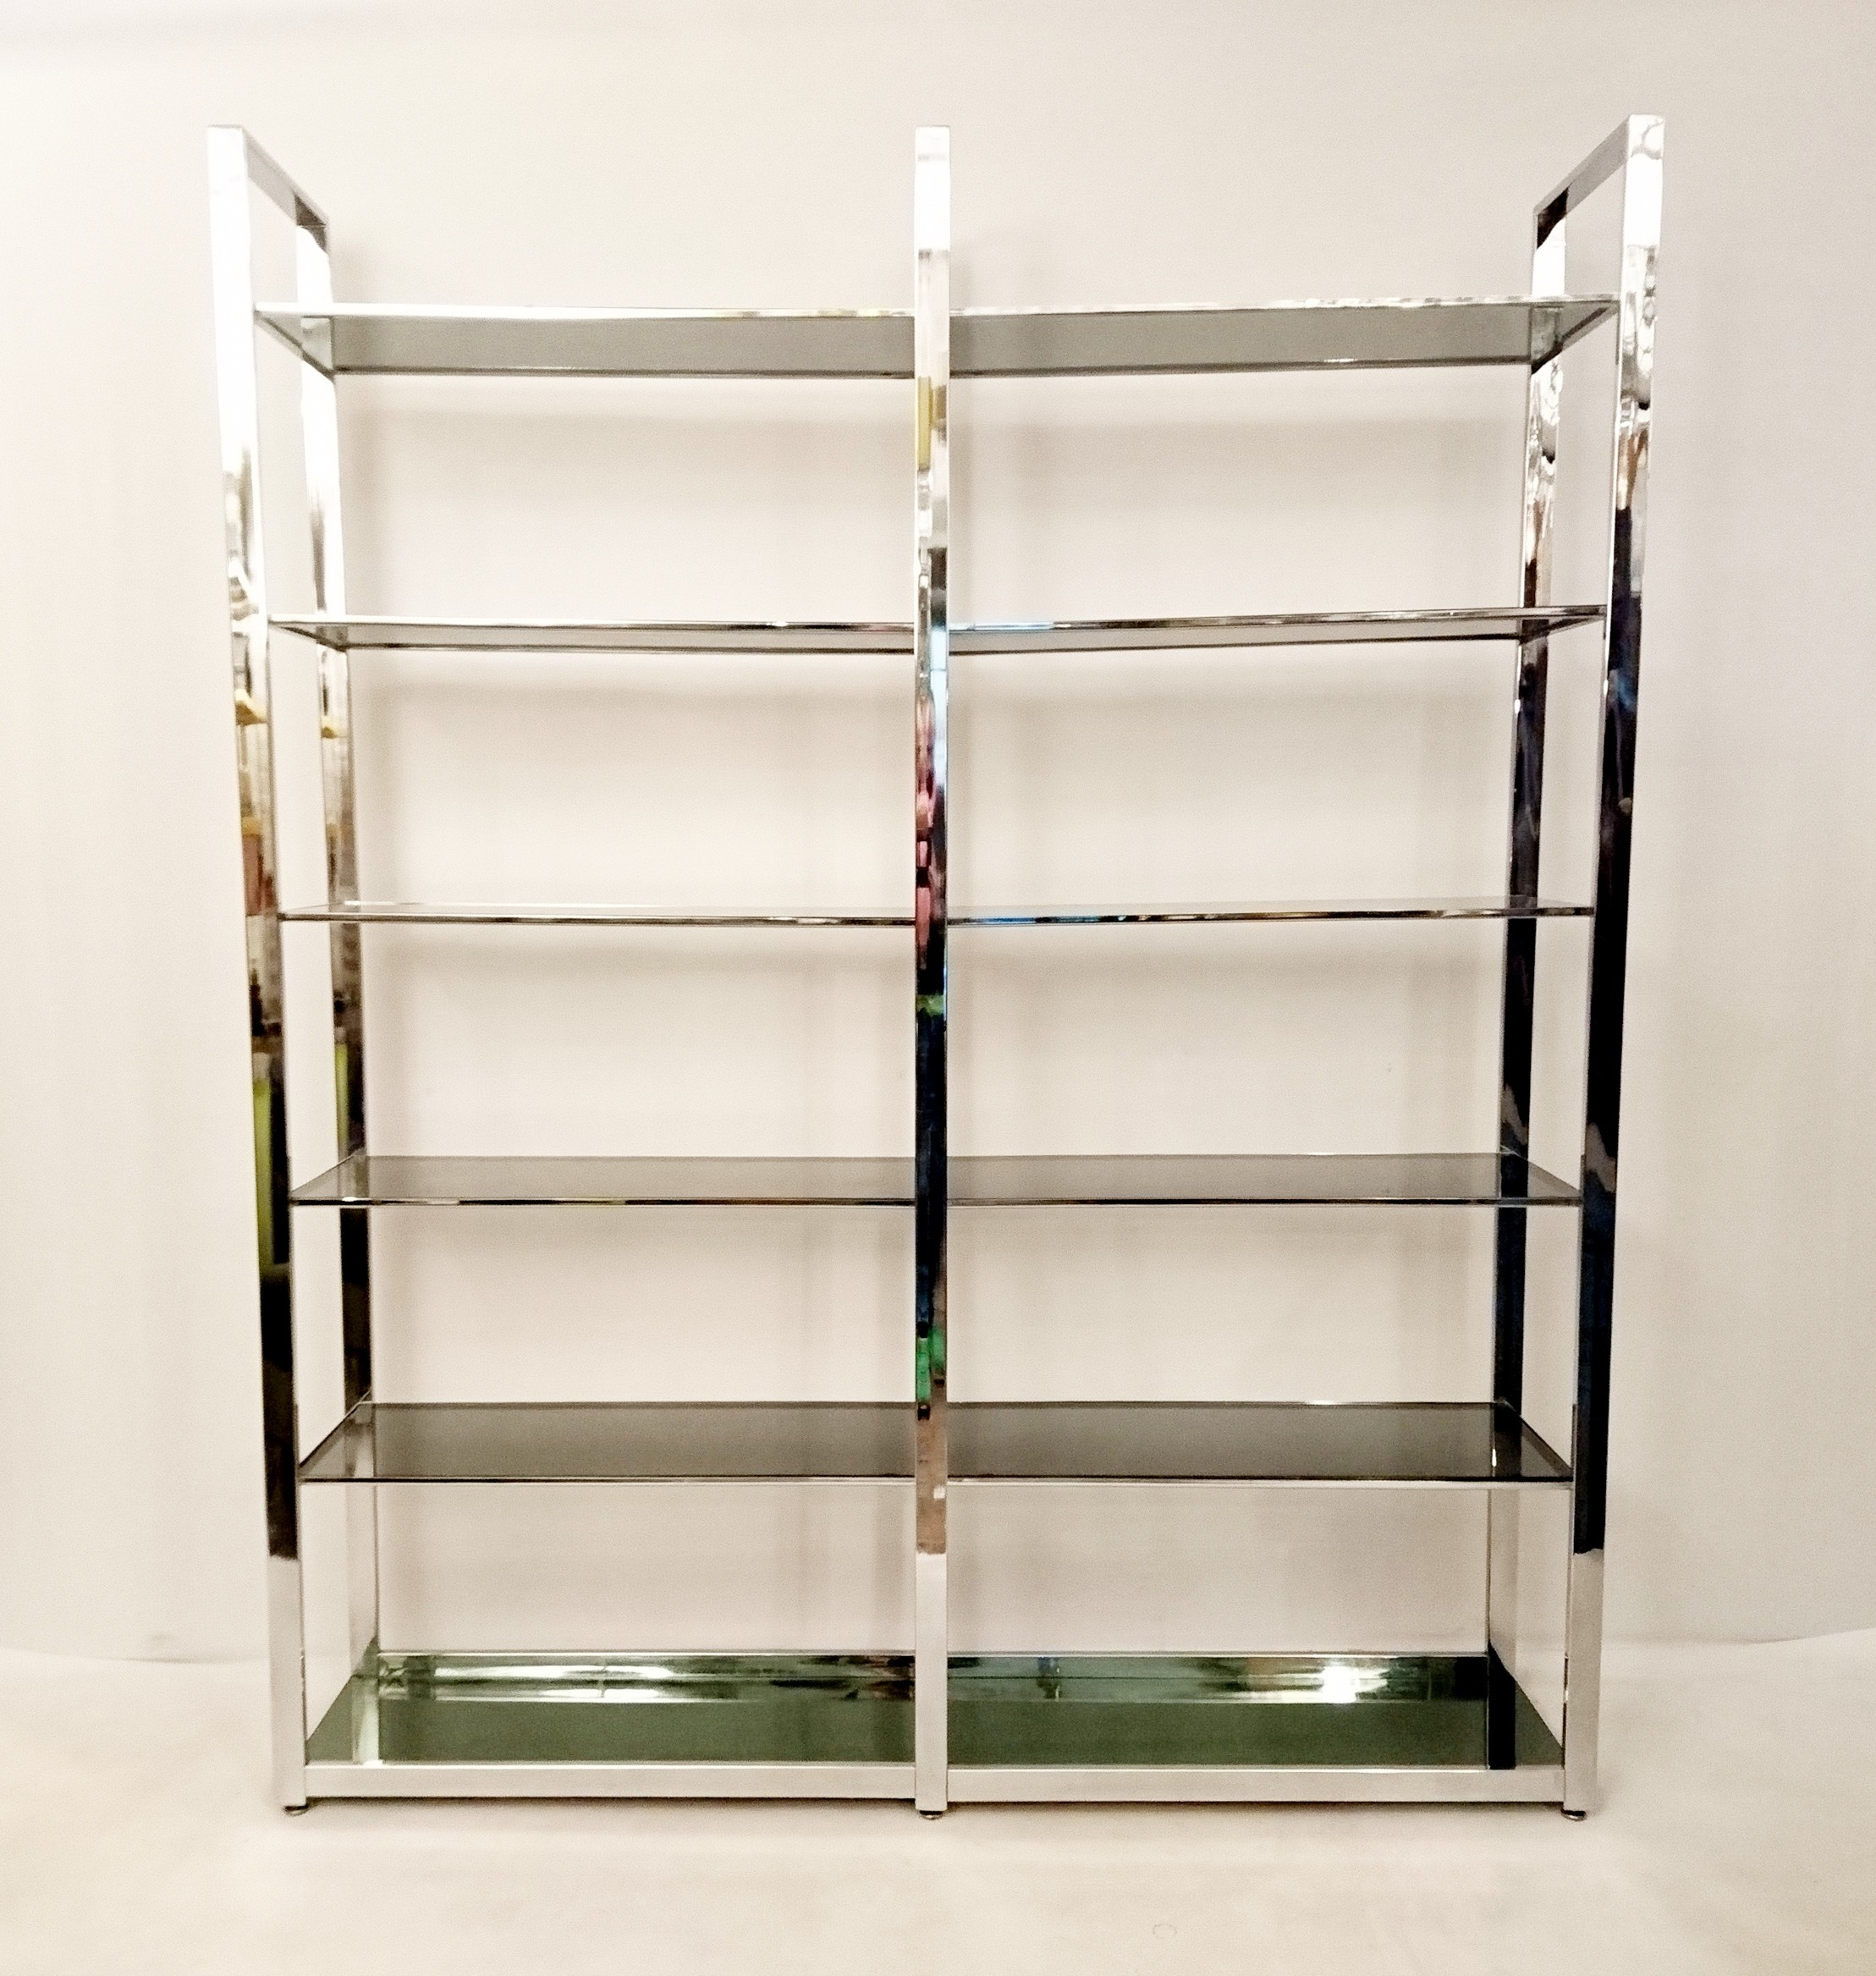 bookshelf reviews storage tier utility image customer organize rated bathroom tool pcr best product freestanding shelf shelves all chrome in helpful it